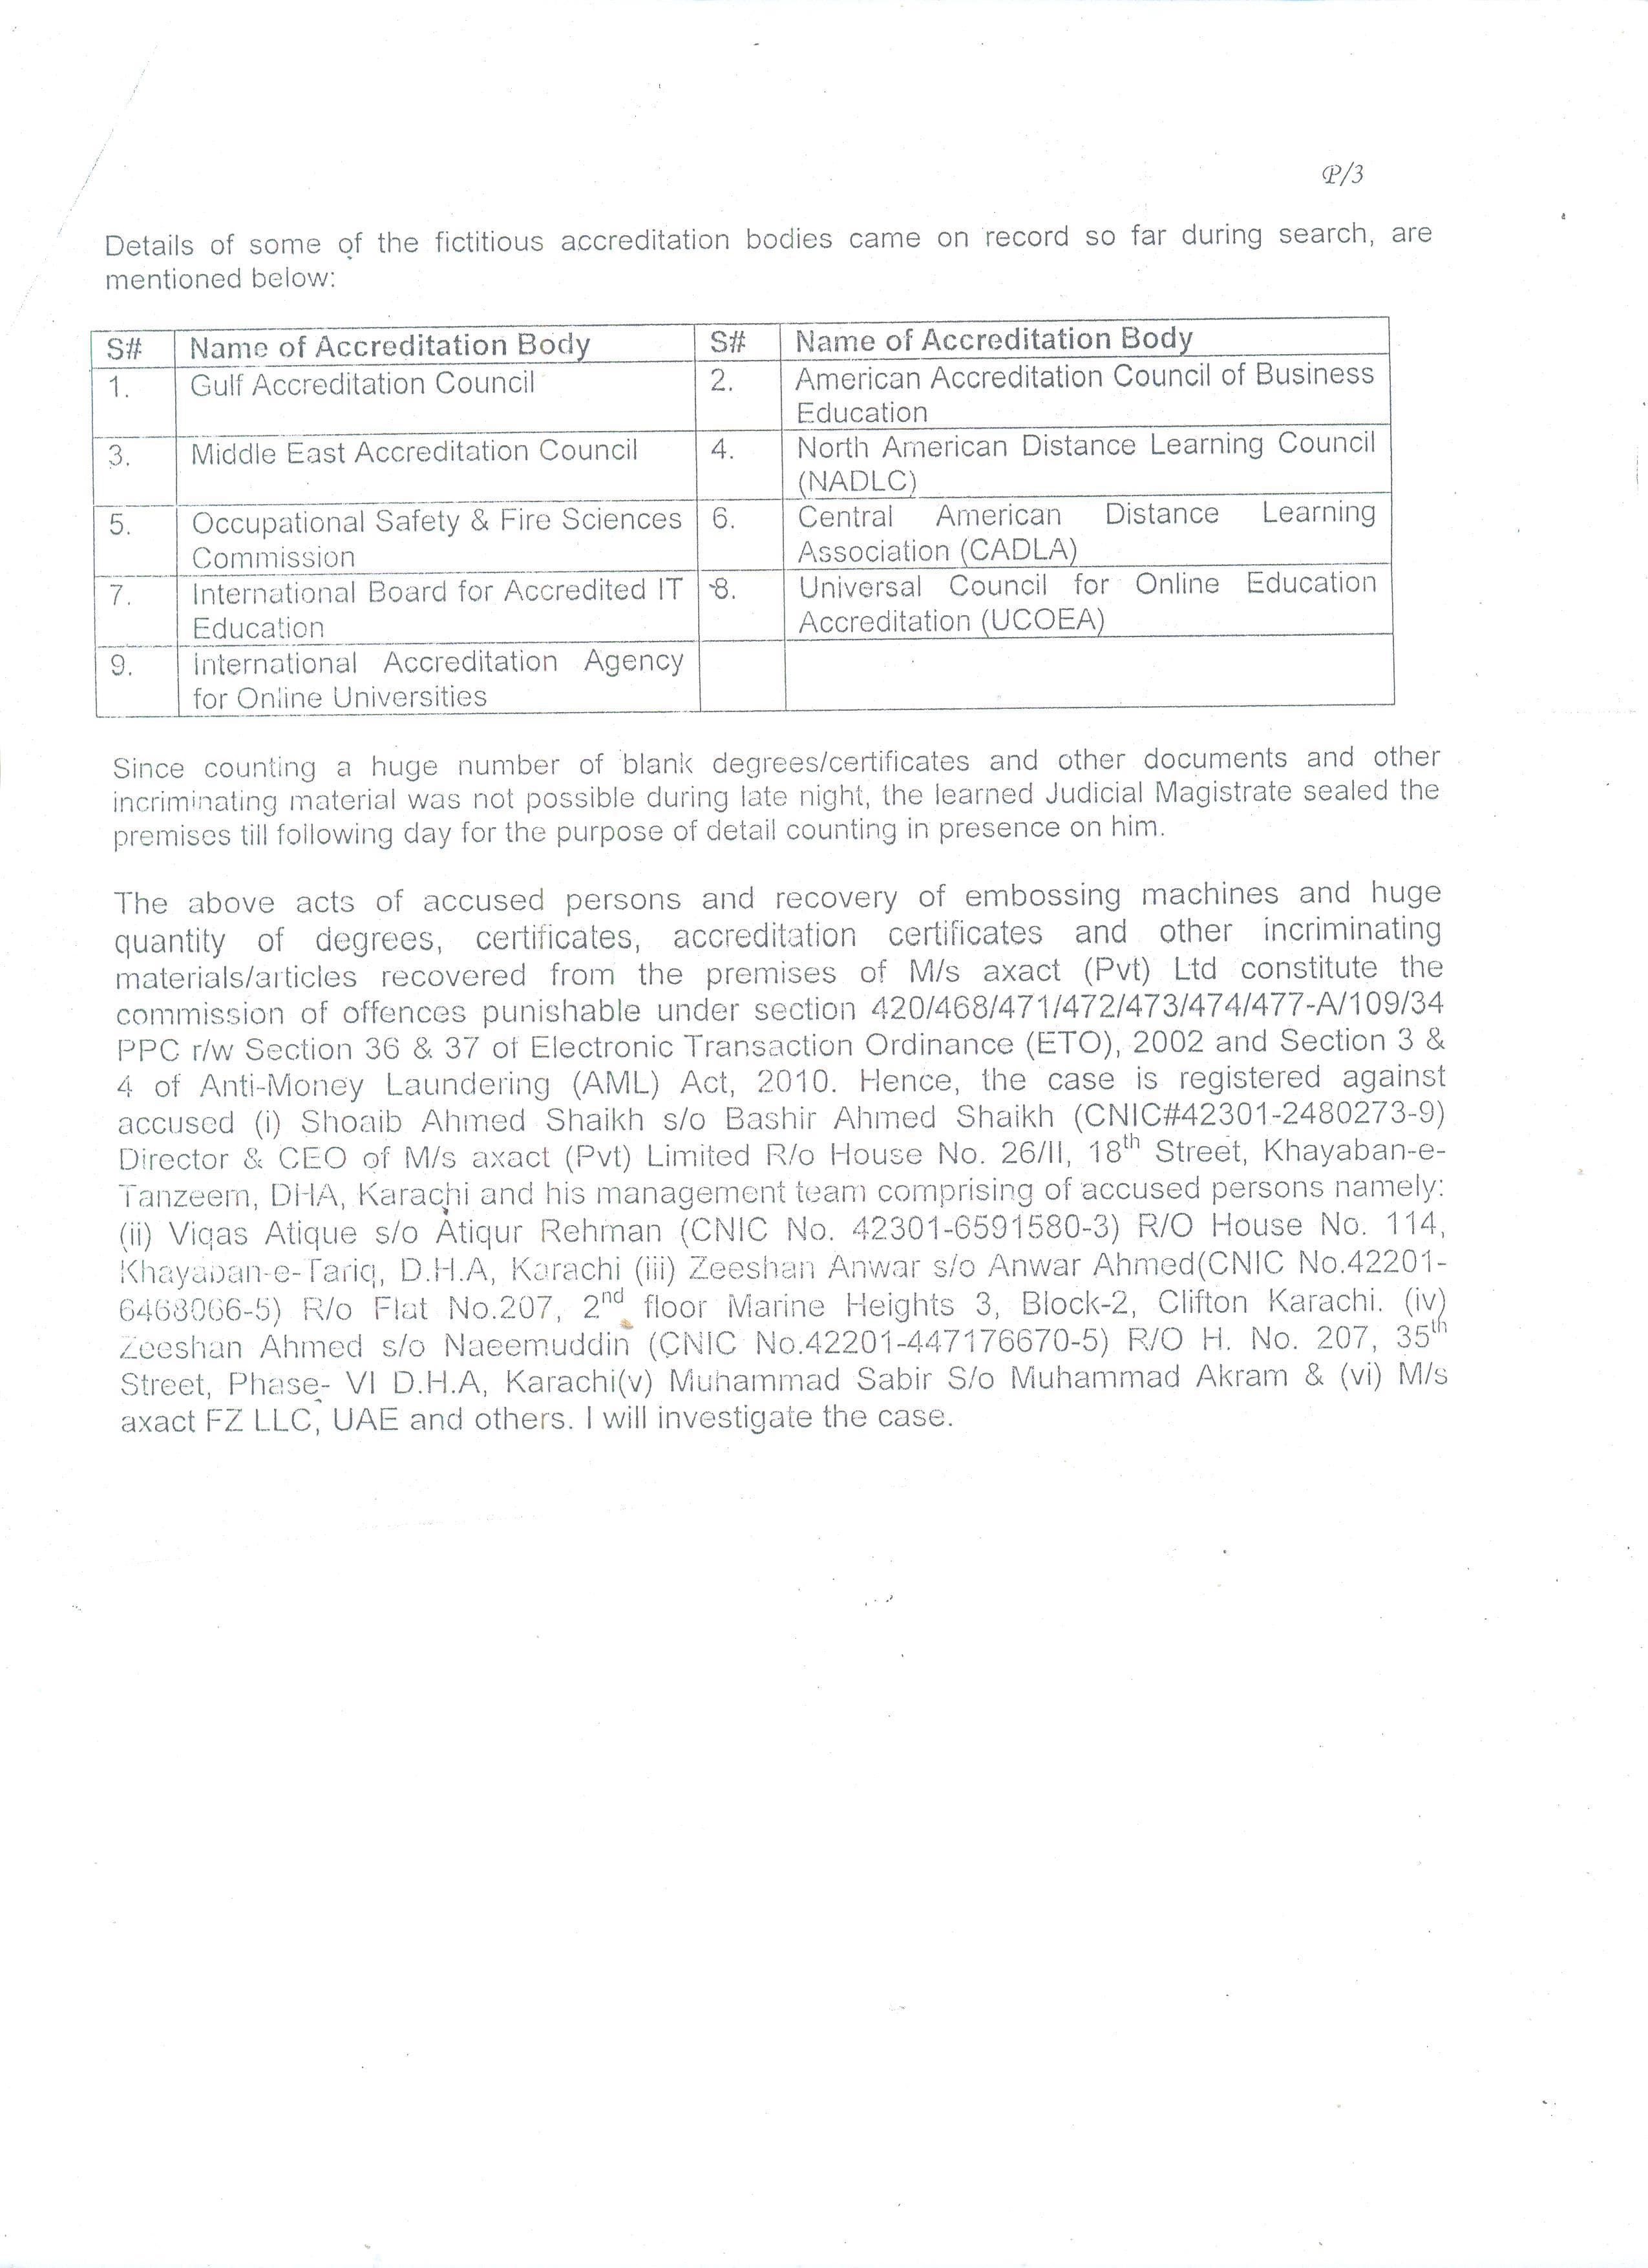 A copy of the FIR obtained by Dawn